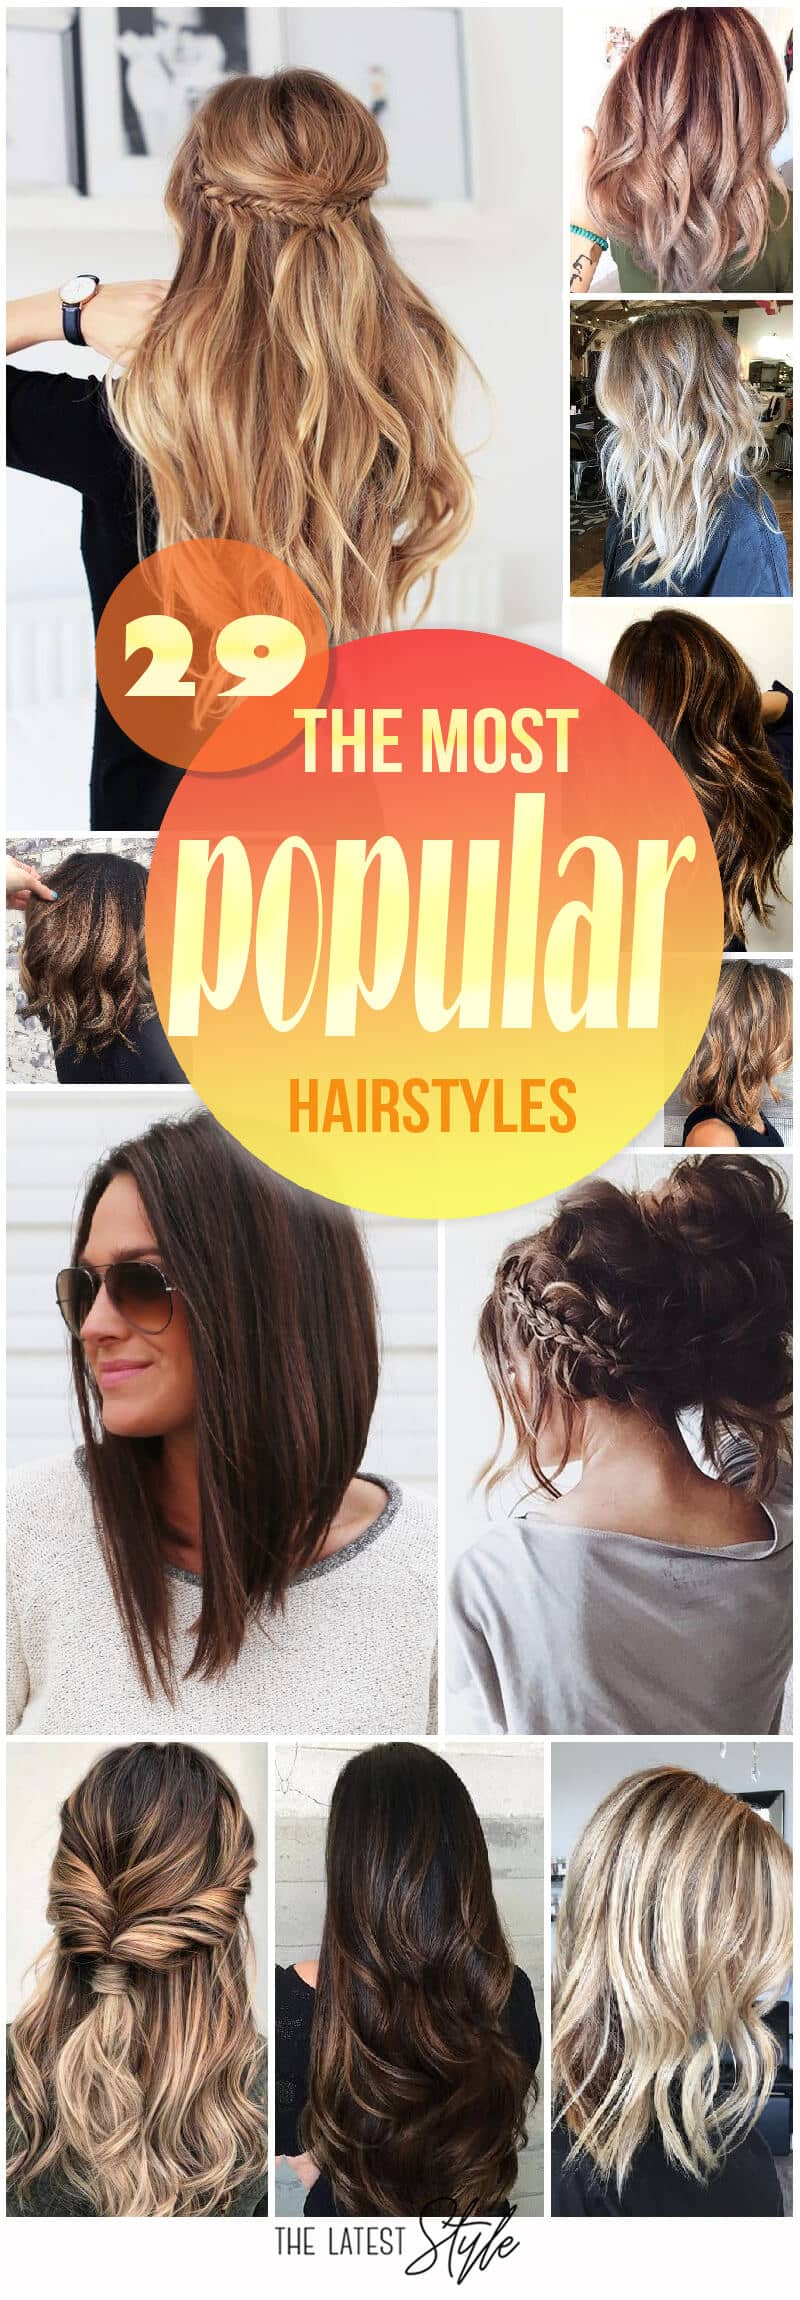 The 10 Most Popular Hairstyles